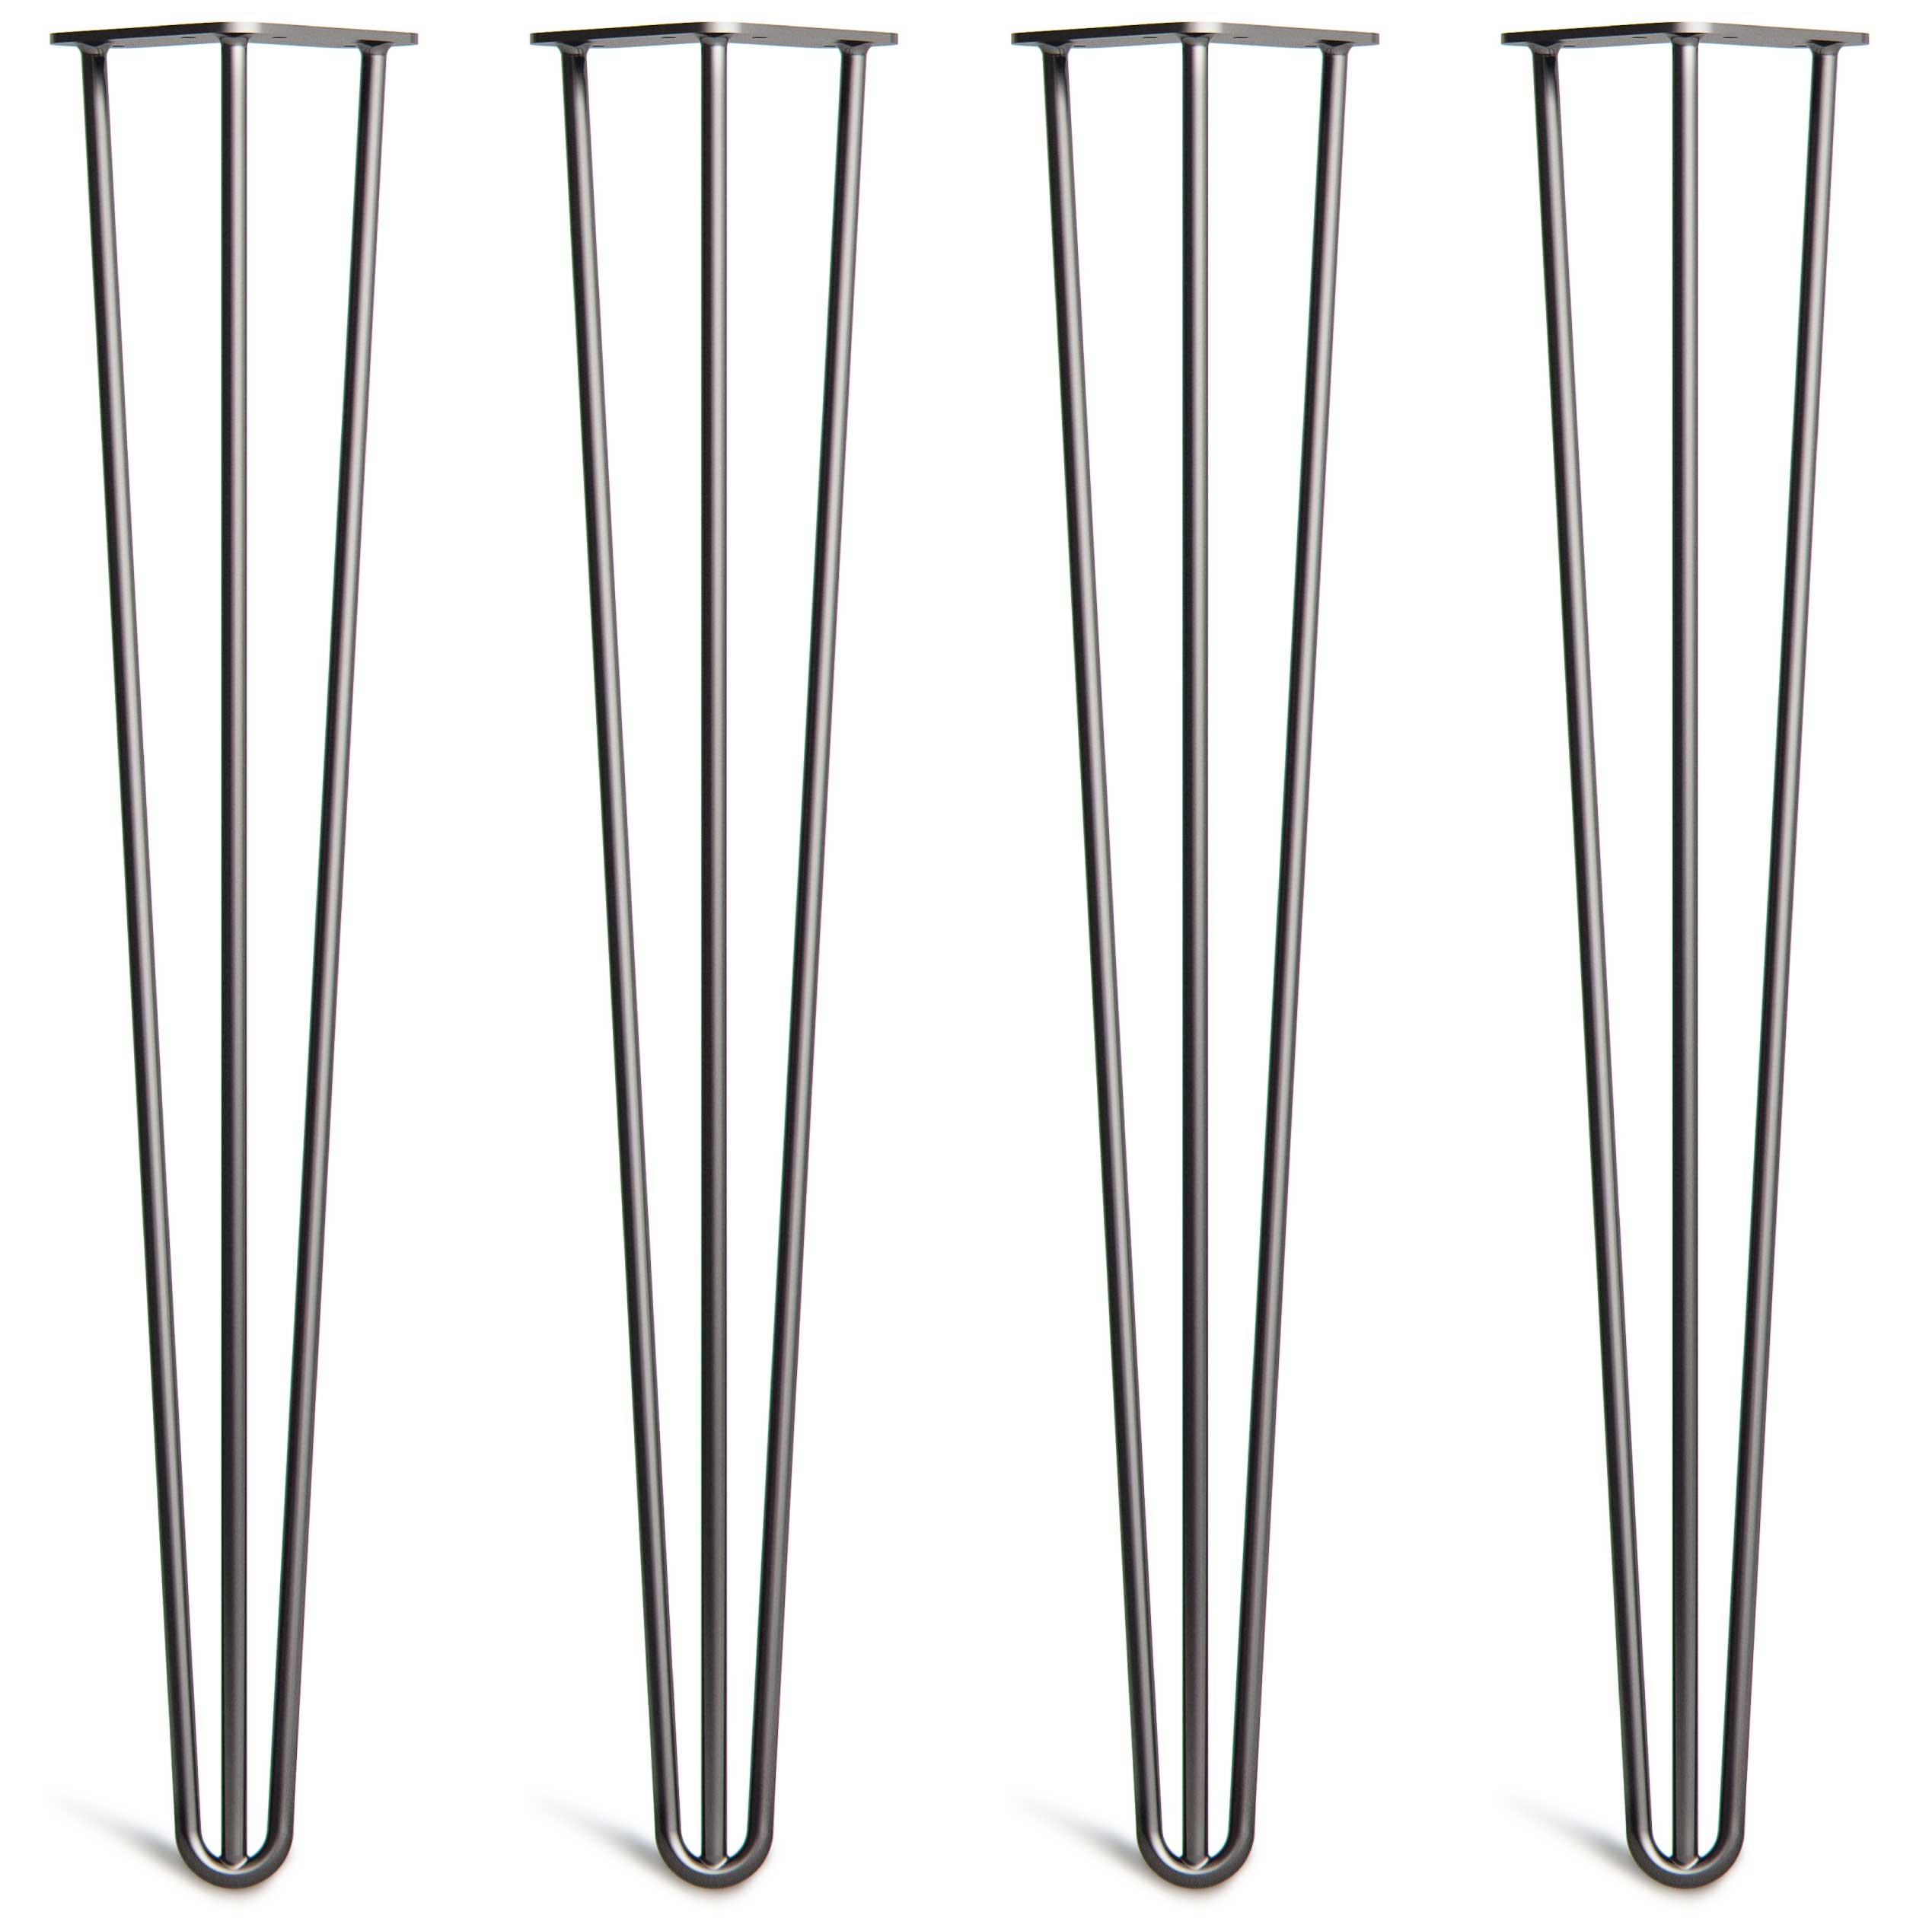 4 x Hairpin Table Legs - Superior Double Weld Steel Construction with Free Screws, Build Guide & Protector Feet, Worth $10! - 4'' to 34'', All Finishes, Classic 3/8 inch [28'', 3 Rod, Black]